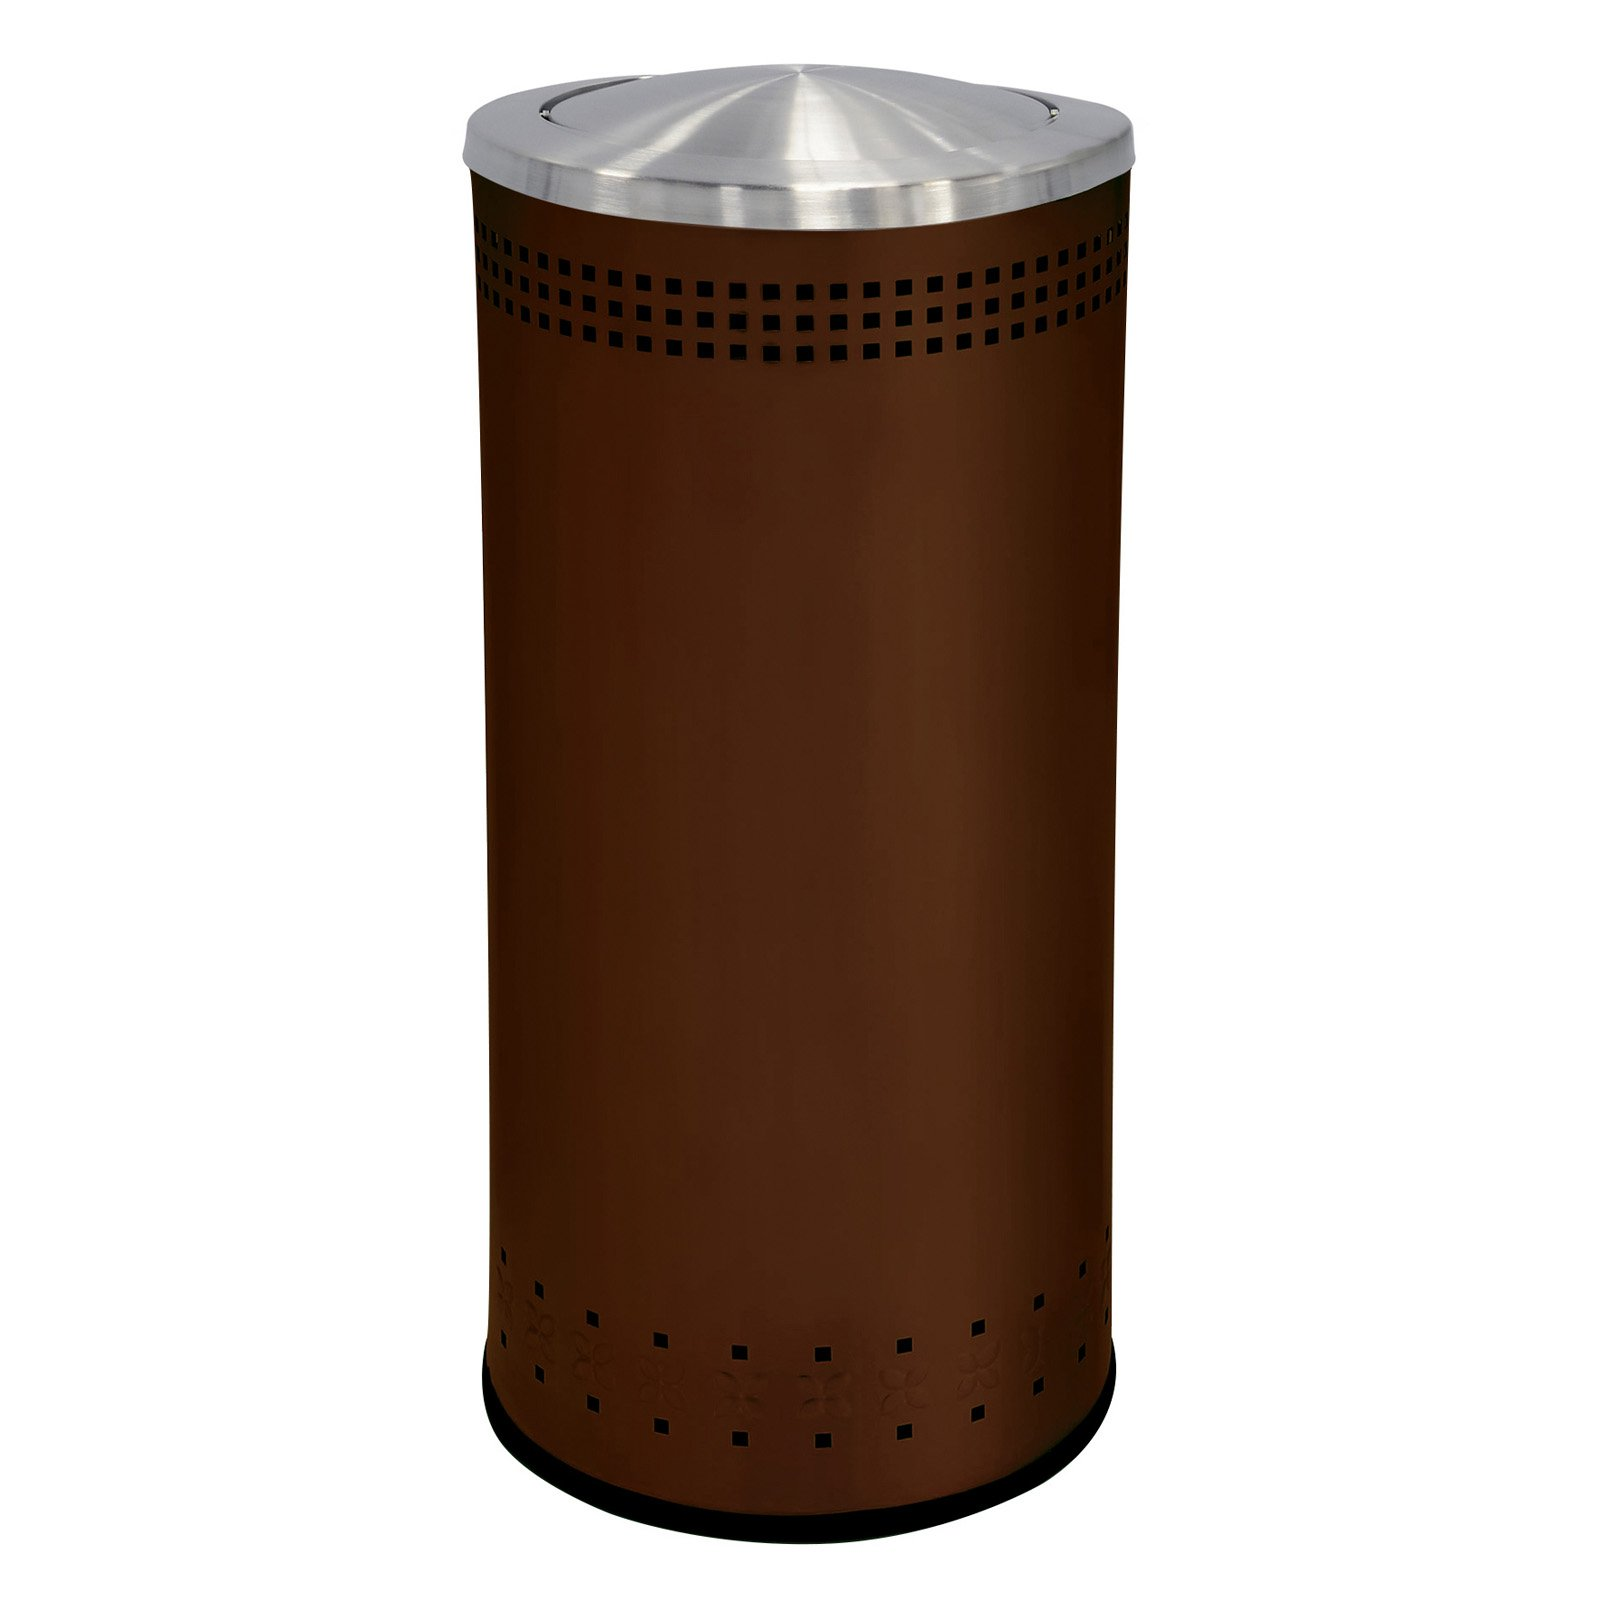 Copper Trash Can With Lid Commercial Zone 25 Gallon Swivel Lid Trash Can With Stainless Steel Lid